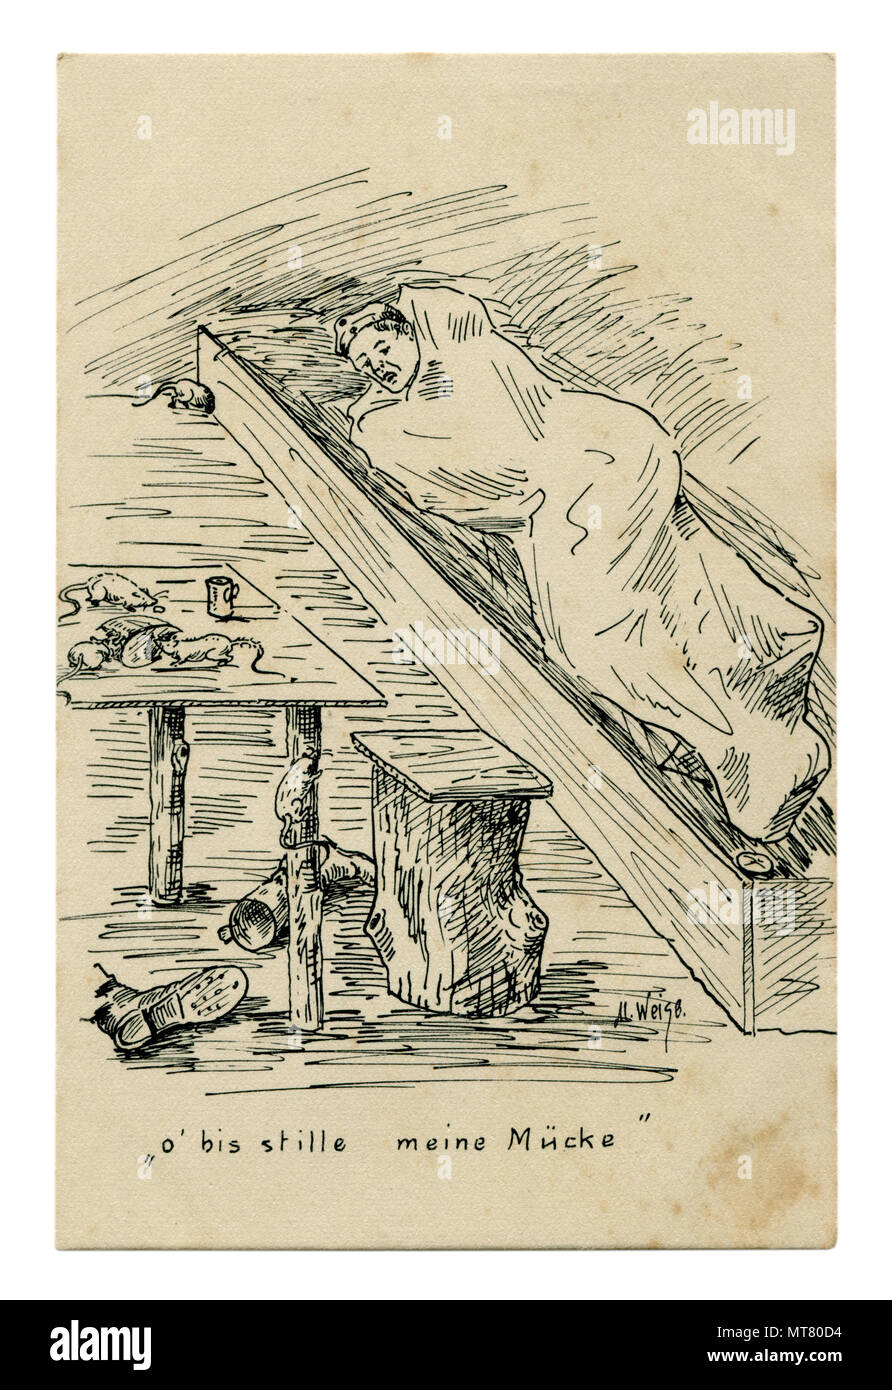 German historical postcard: Black and white pencil sketch. Soldier resting in the dugout. Mice and rats eat leftover bread on the table. 1914-1918 Stock Photo